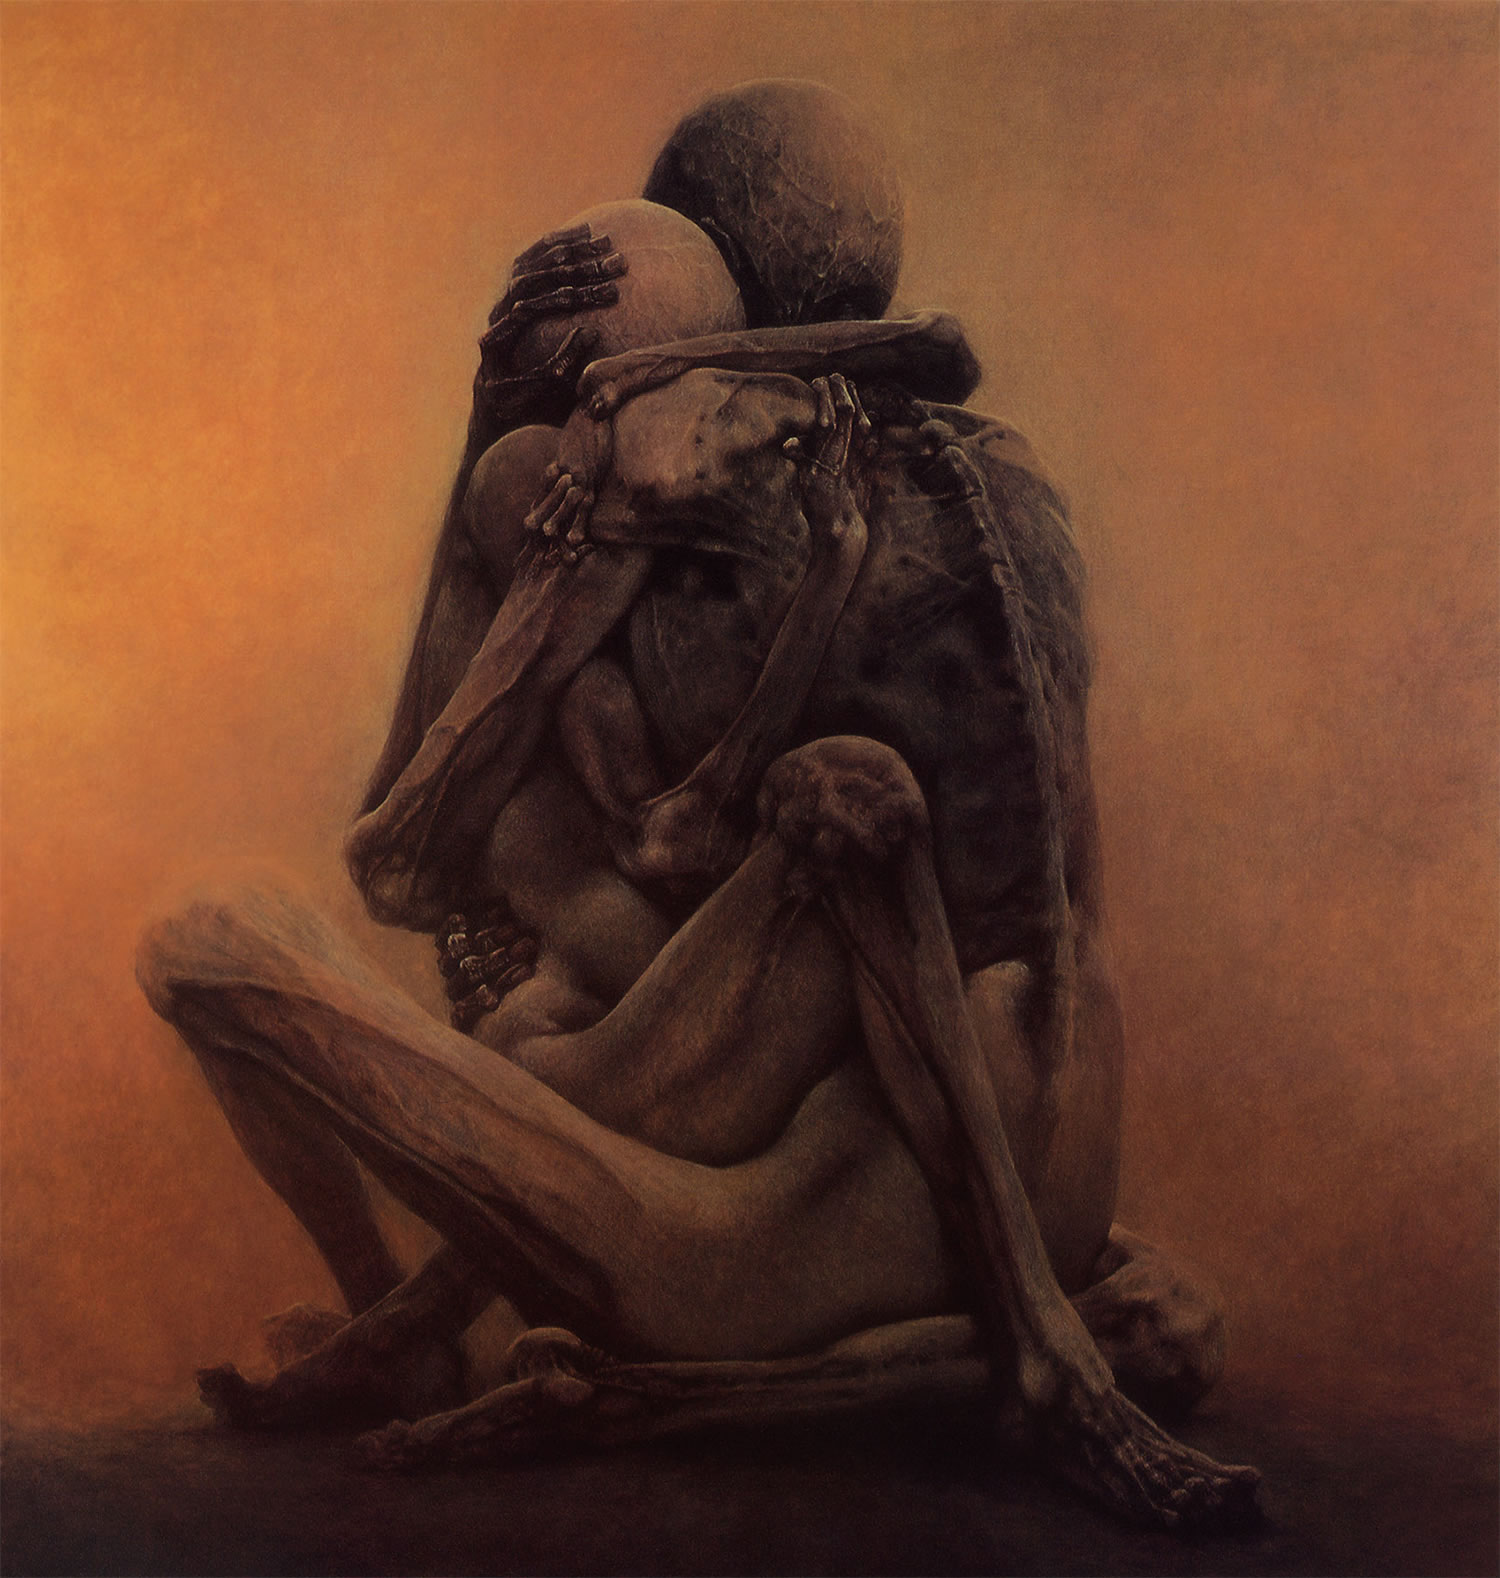 Untitled by Zdizslaw Beksinski